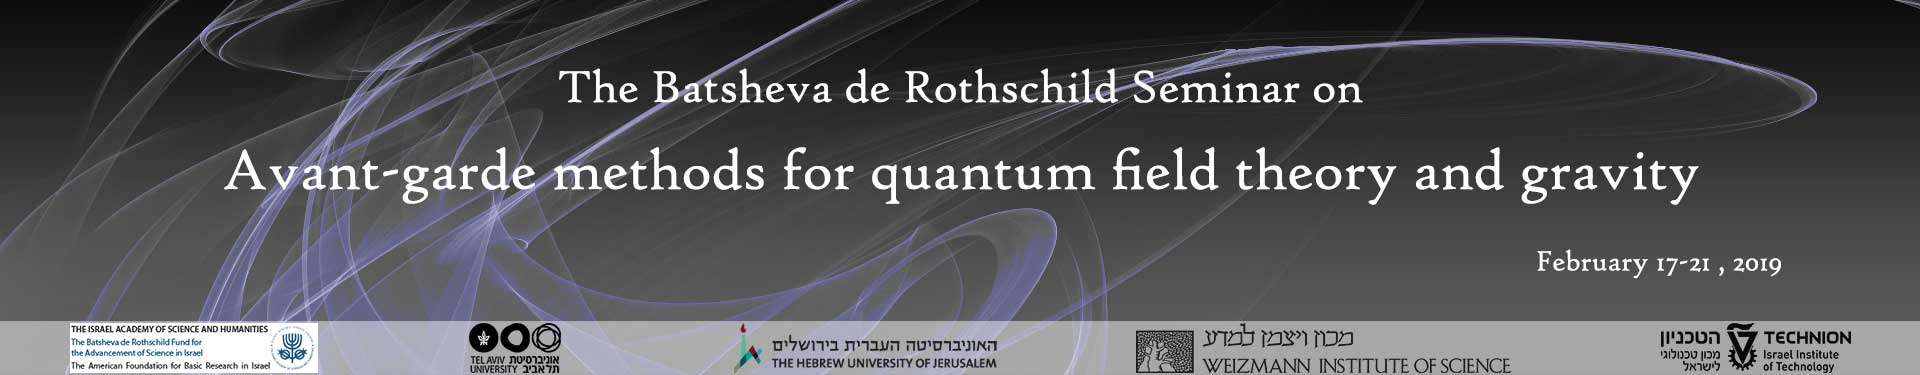 The Batsheva de Rothschild Seminar on avant-garde methods for quantum field theory and gravity. Feb. 2019